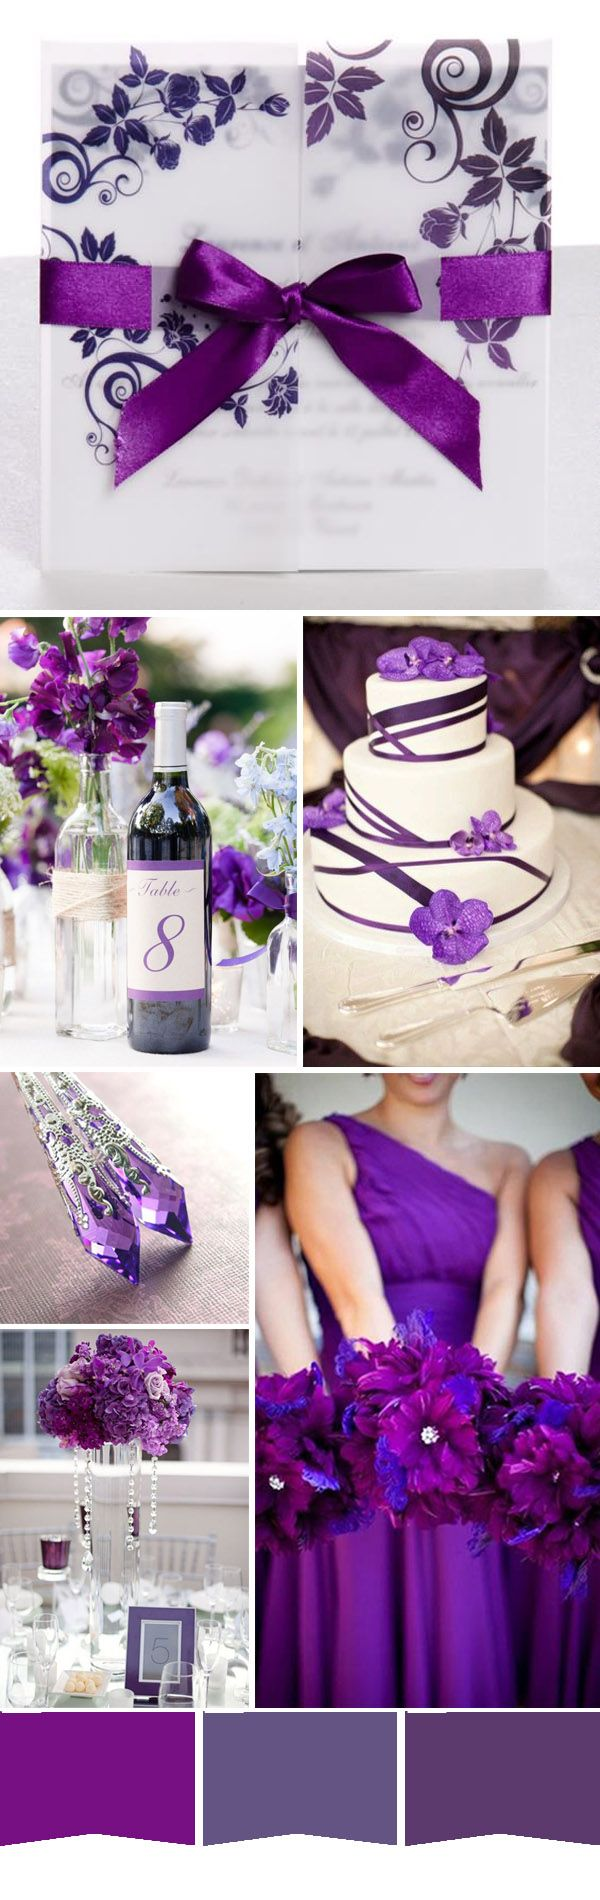 Wedding decoration ideas purple   best Wedding ideas images on Pinterest  Purple wedding Weddings